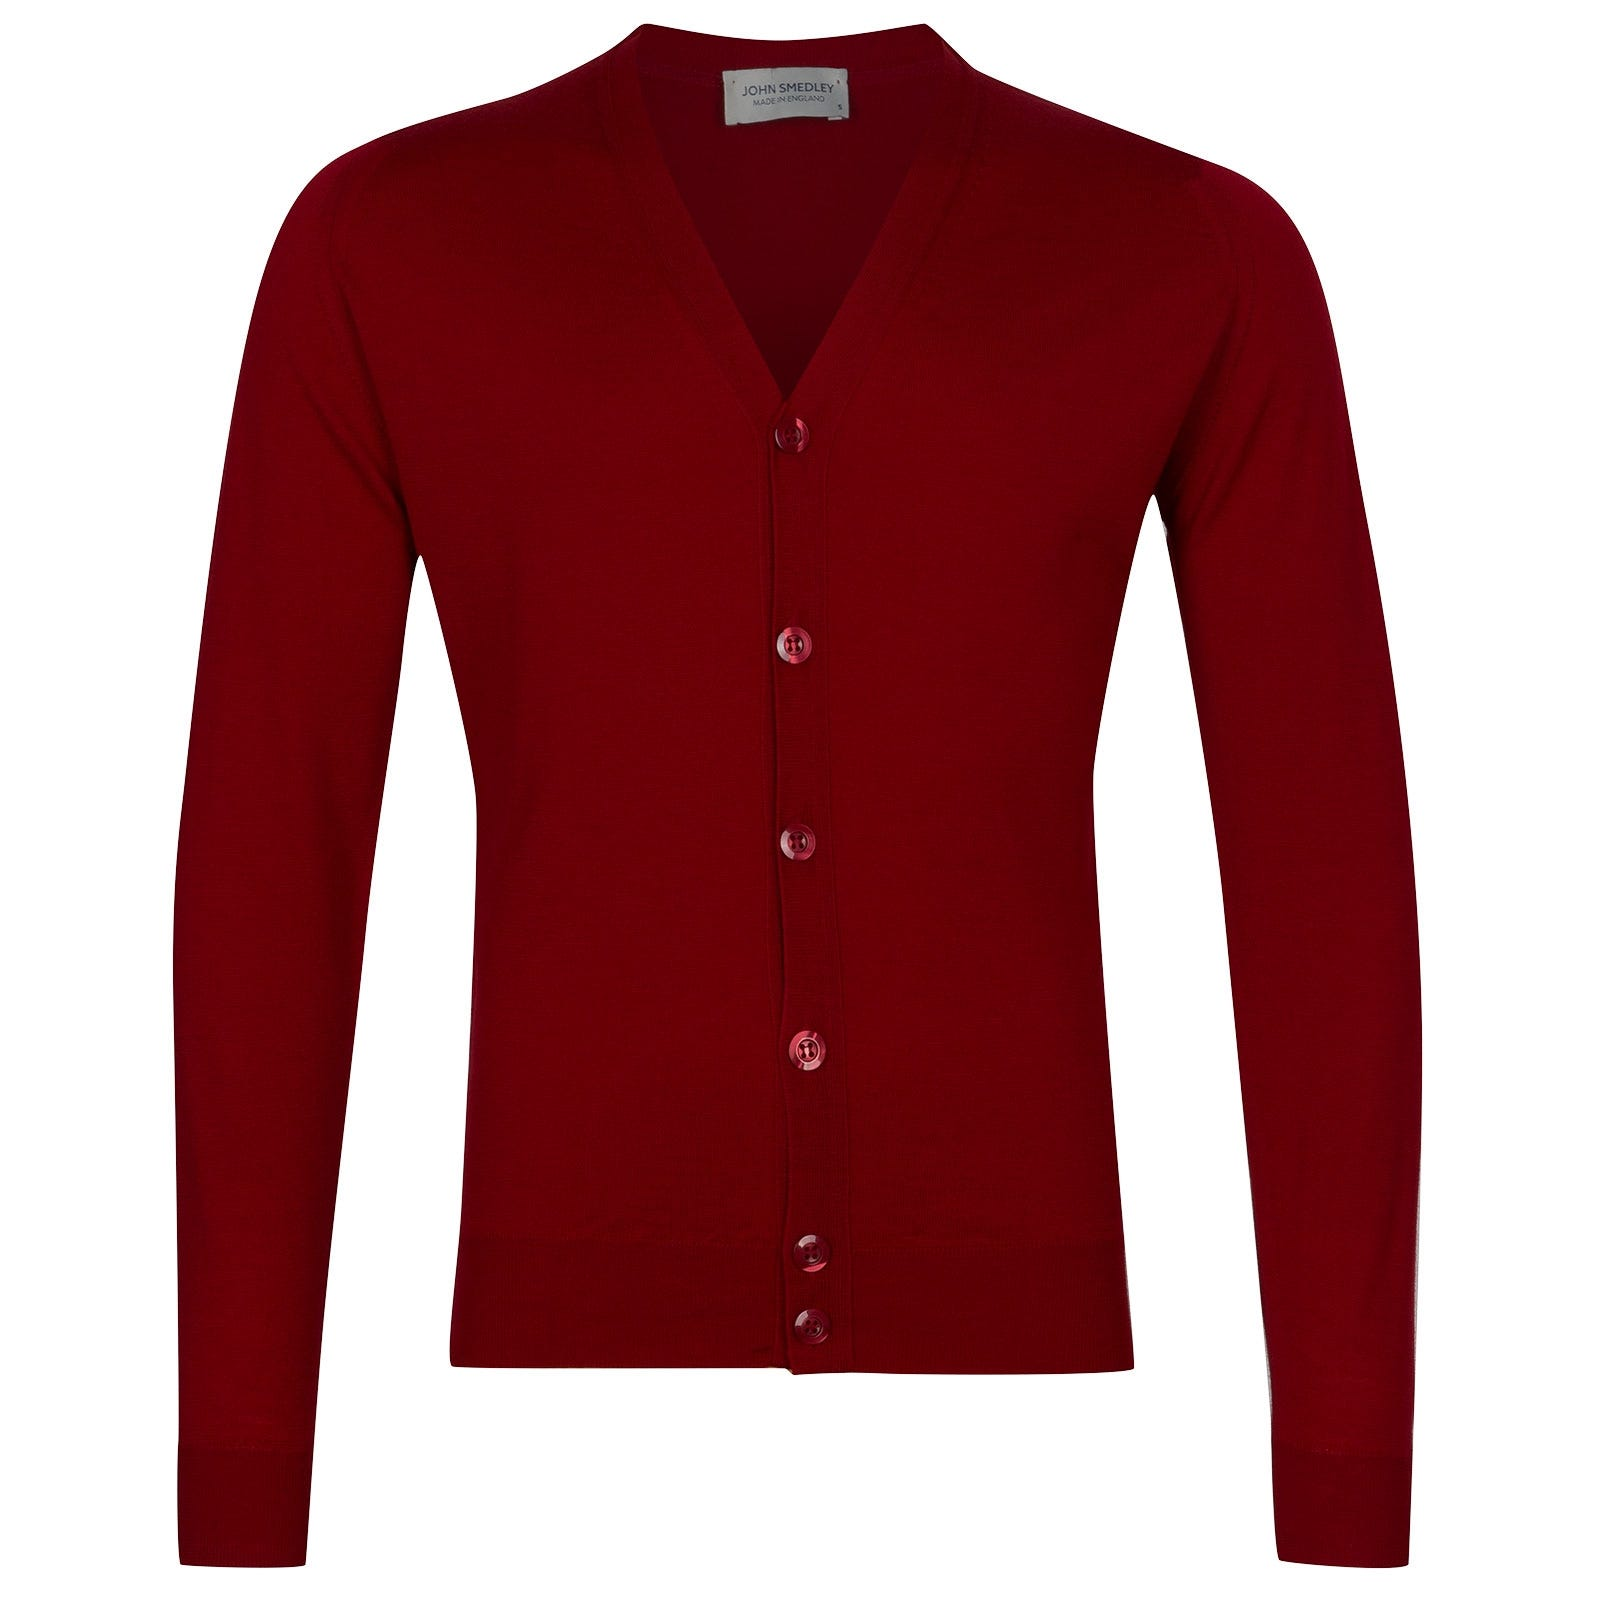 John Smedley Naples Merino Wool Cardigan in Thermal Red-L